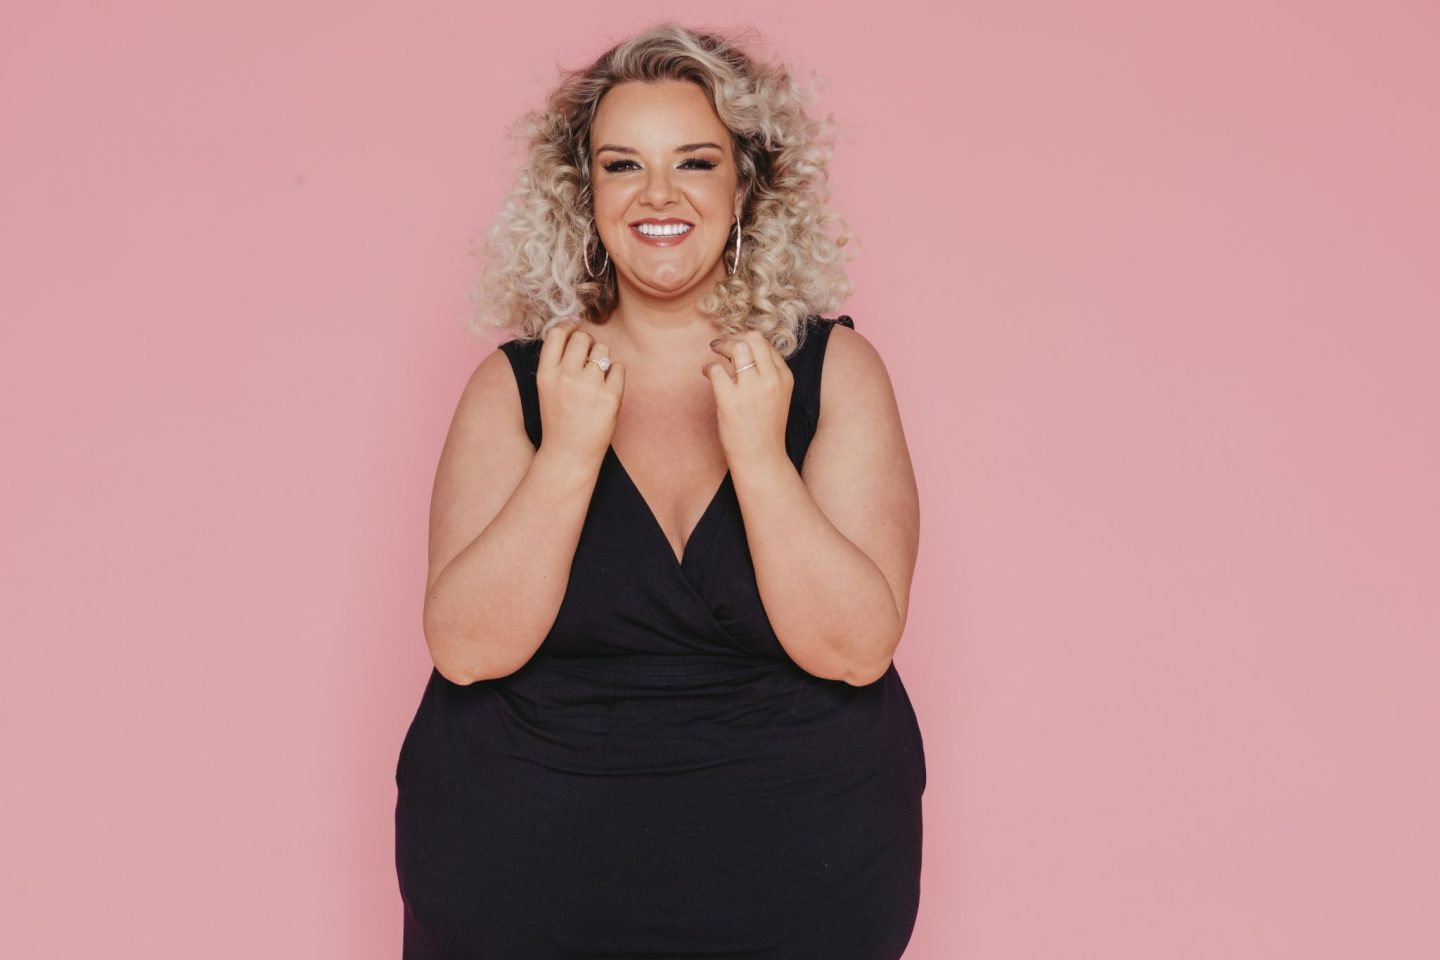 WhatLauraLoves Plus Size Body Positivity Curvissa